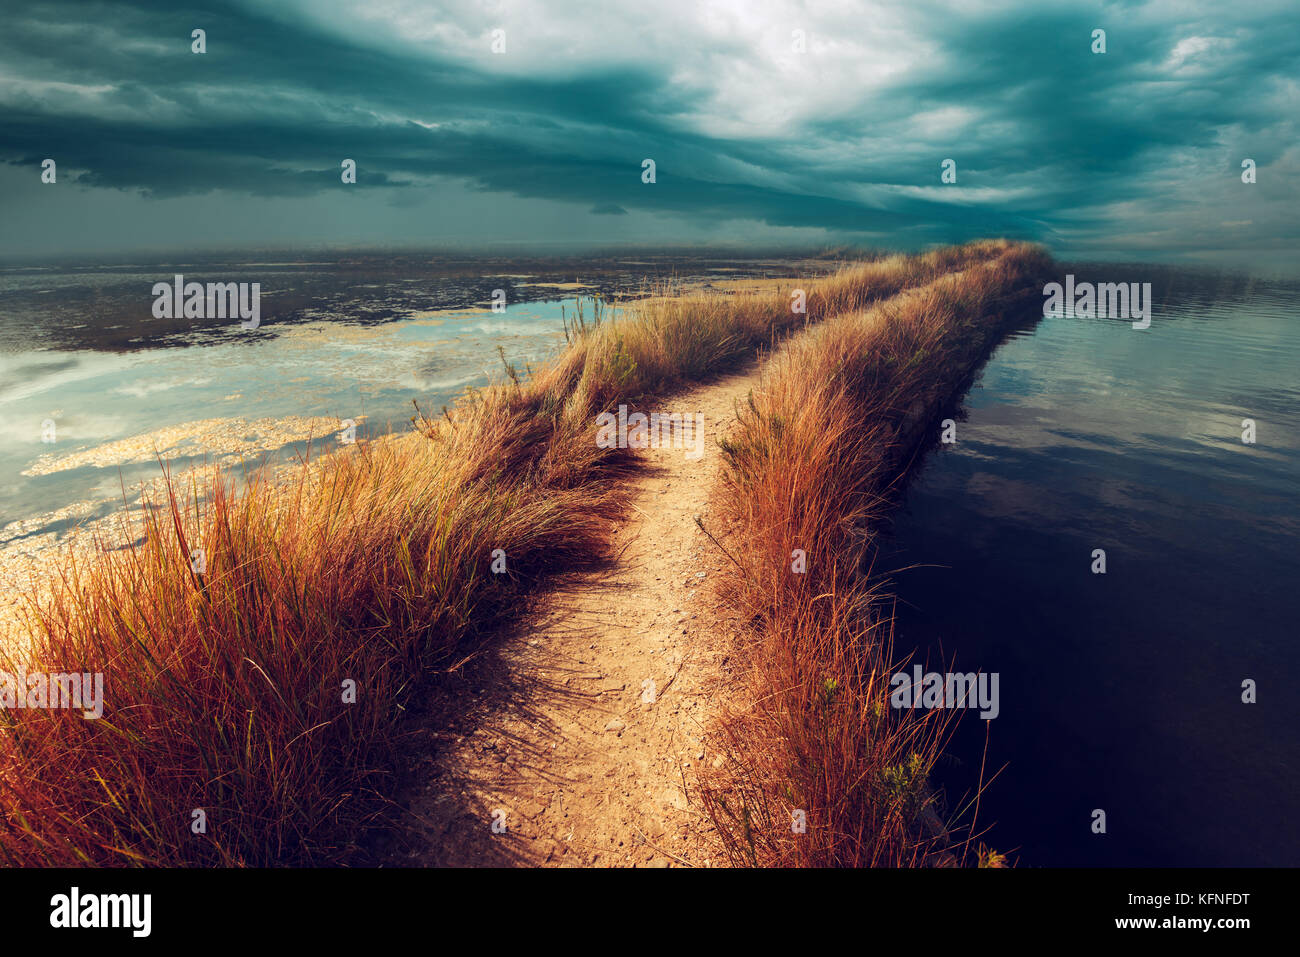 Uncertainty, doubt and insecurity in the future. Risky footpath road through water vanishing in distance dark stormy - Stock Image